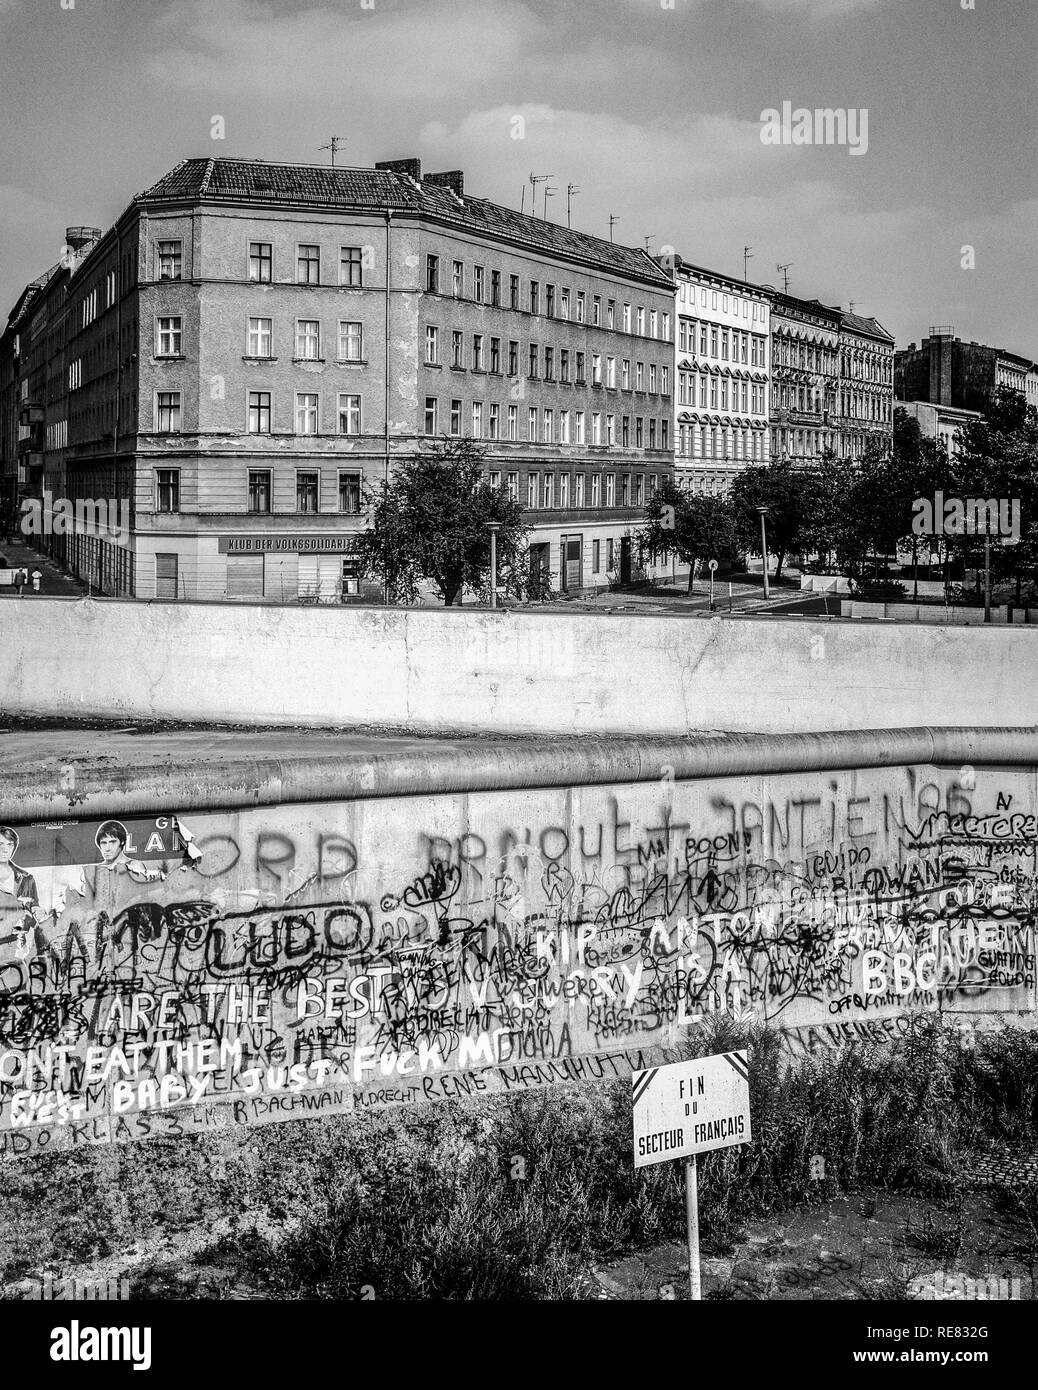 August 1986, Berlin Wall, warning sign for end of French sector, death strip, Bernauer Strasse street, Wedding, West Berlin side , Germany, Europe, - Stock Image